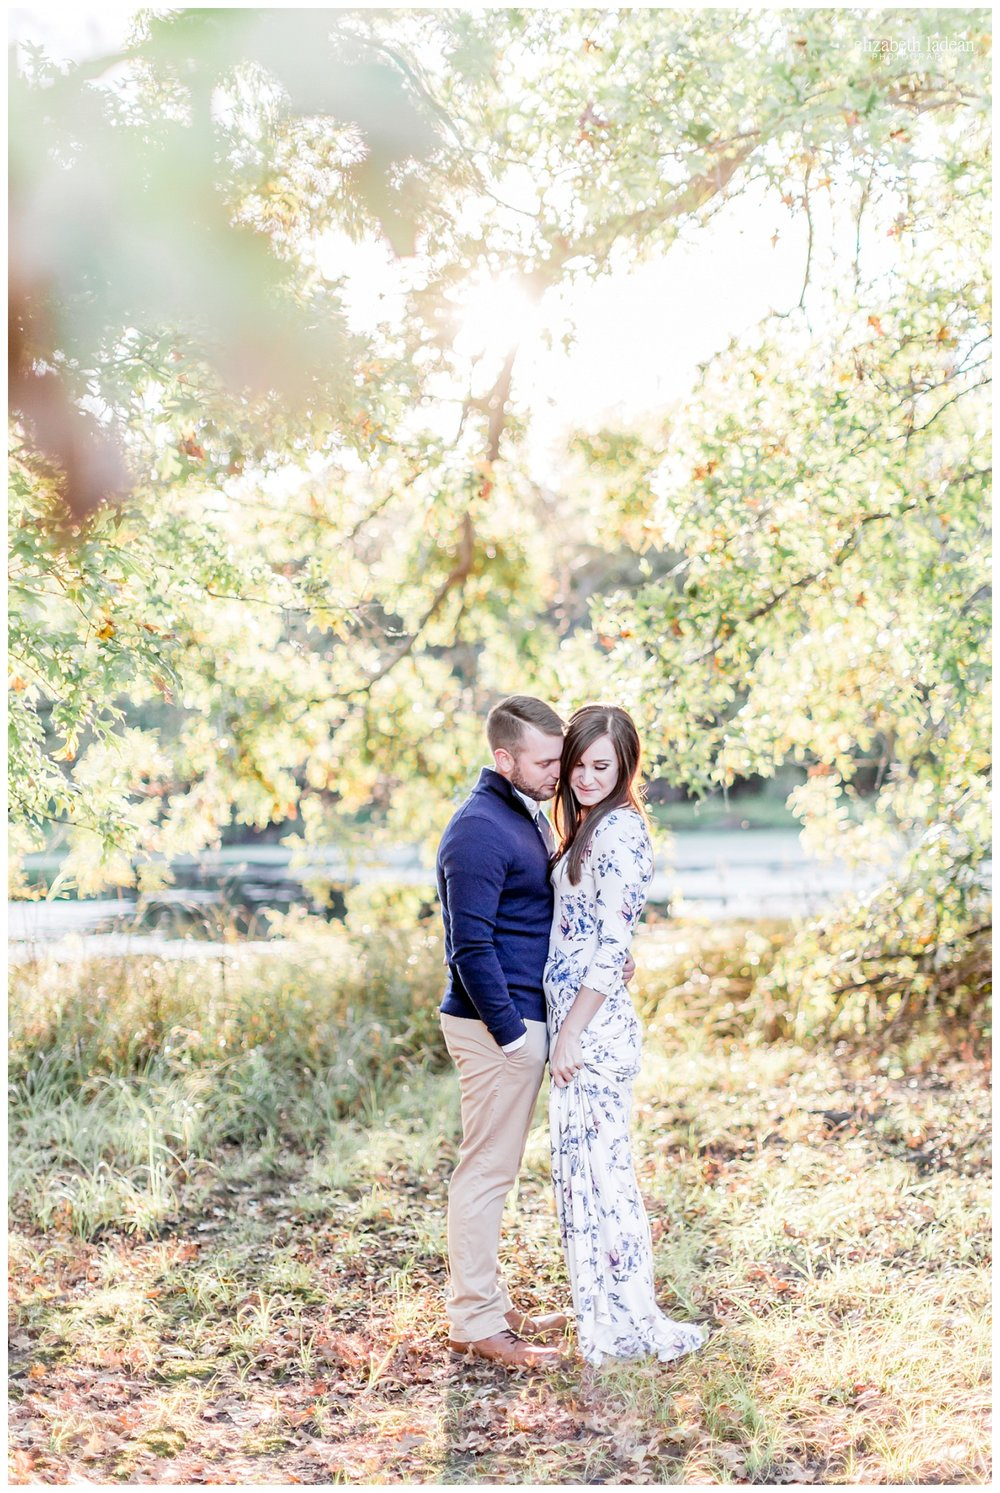 Golden-Midwest-Light-Engagement-Session-T+N-Elizabeth-Ladean-Photography-photo-_5139.jpg